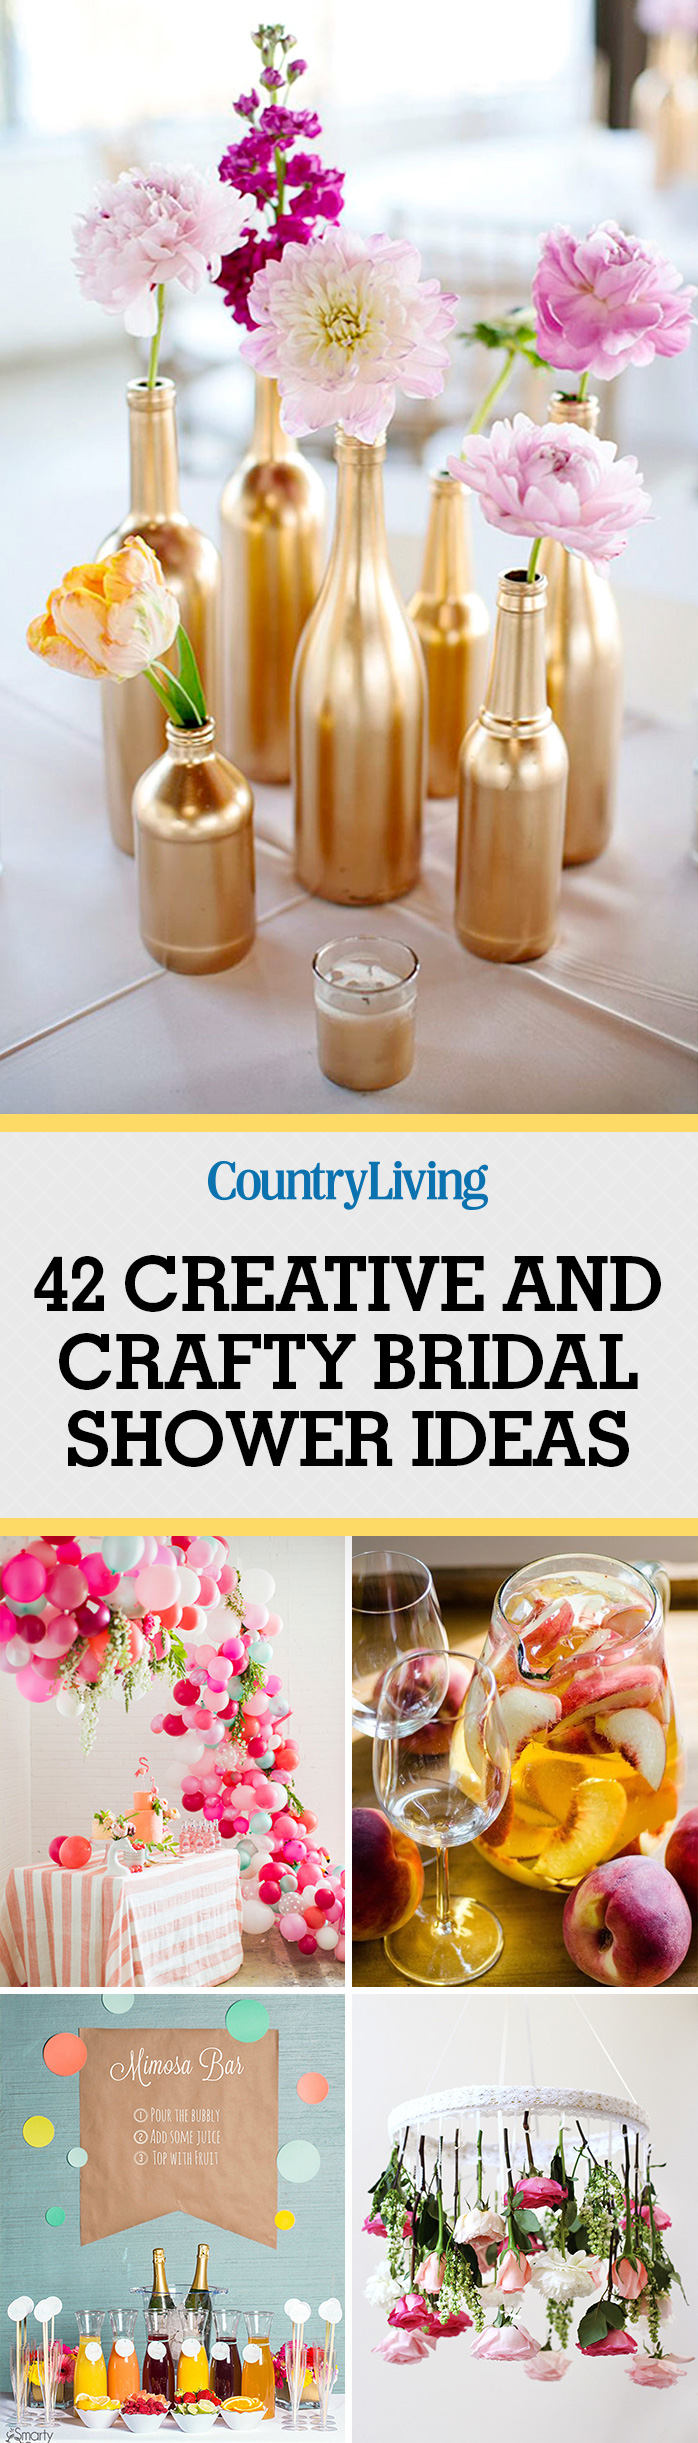 50 Best Bridal Shower Ideas Fun Themes Food And